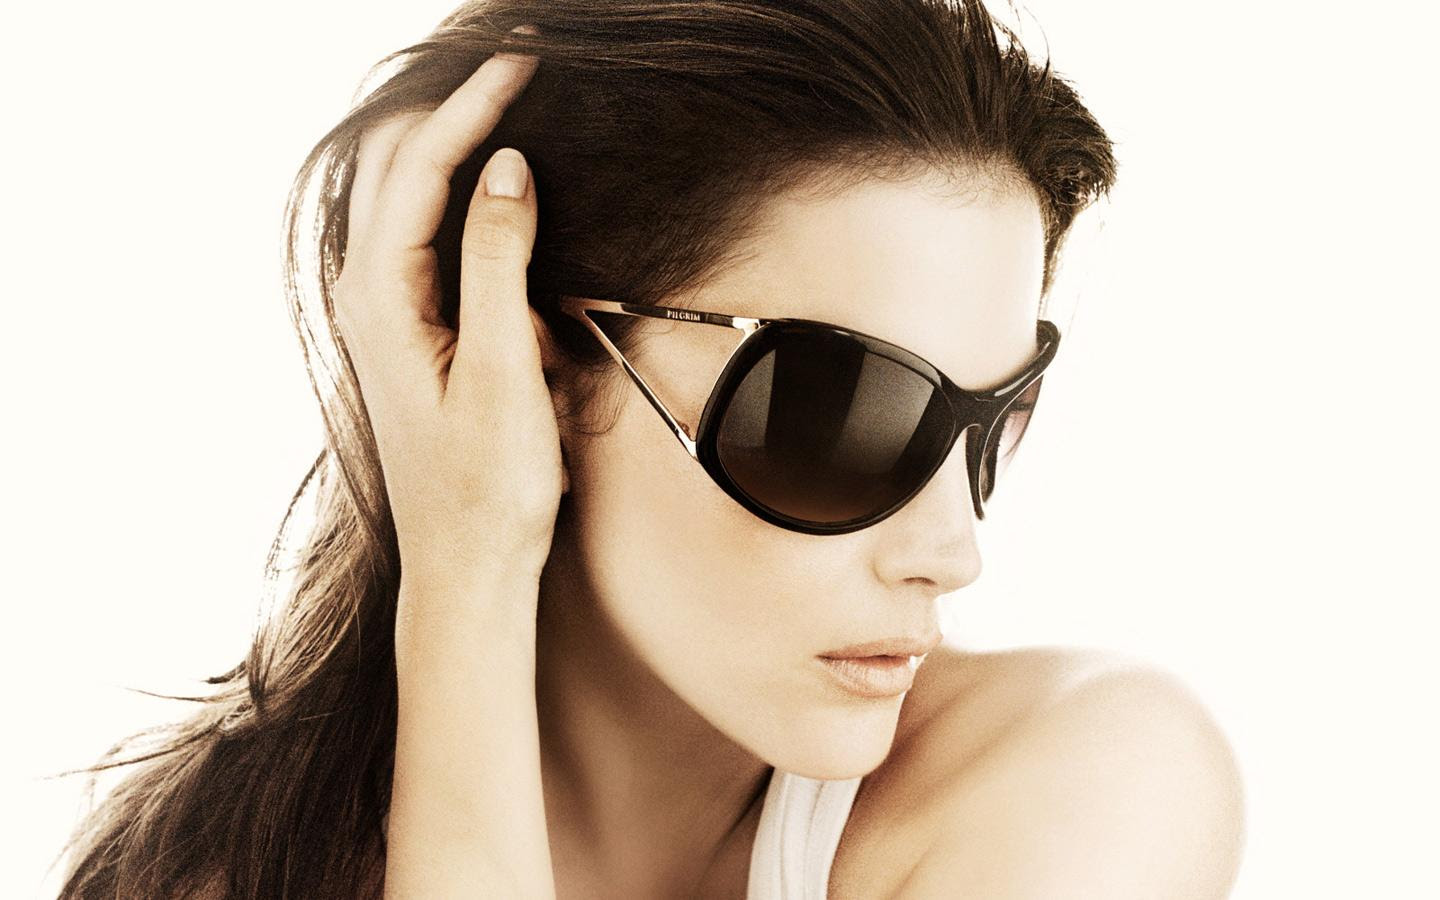 http://www.firmoo.com/answer/tag_img/wrap-around-sunglasses-2.jpg